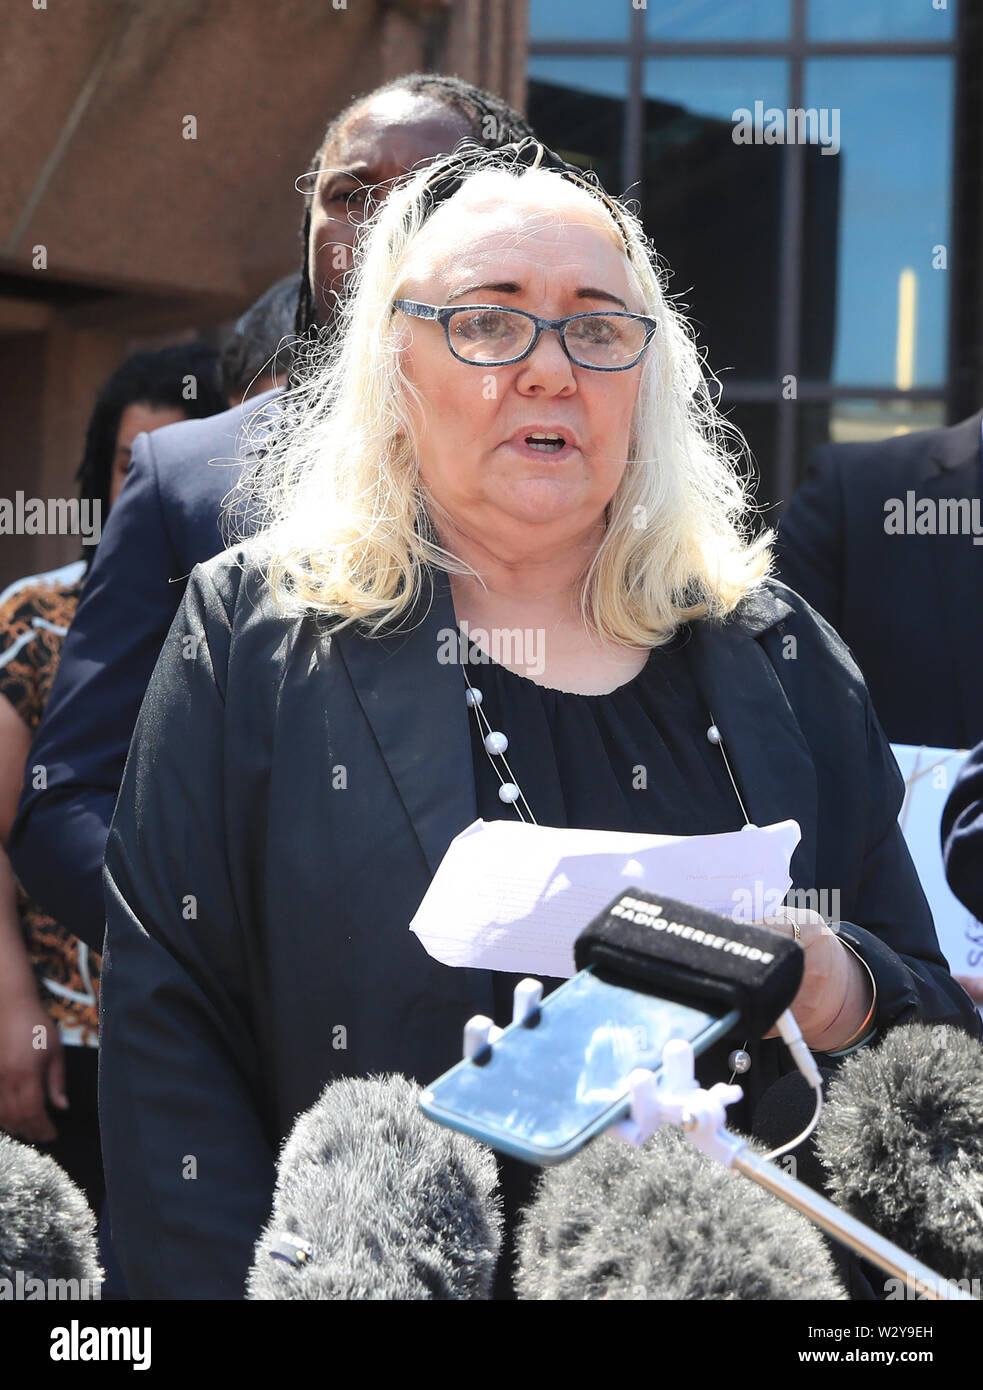 Anthony Grainger's mother Marina speaks to the media outside Liverpool Crown Court following the publication of the report of a public inquiry into the death of her son. Grainger, 36, from Bolton, was shot by a Greater Manchester Police firearms officer through the windscreen of a stolen Audi in a car park in Culcheth, Cheshire, on March 3 2012. - Stock Image